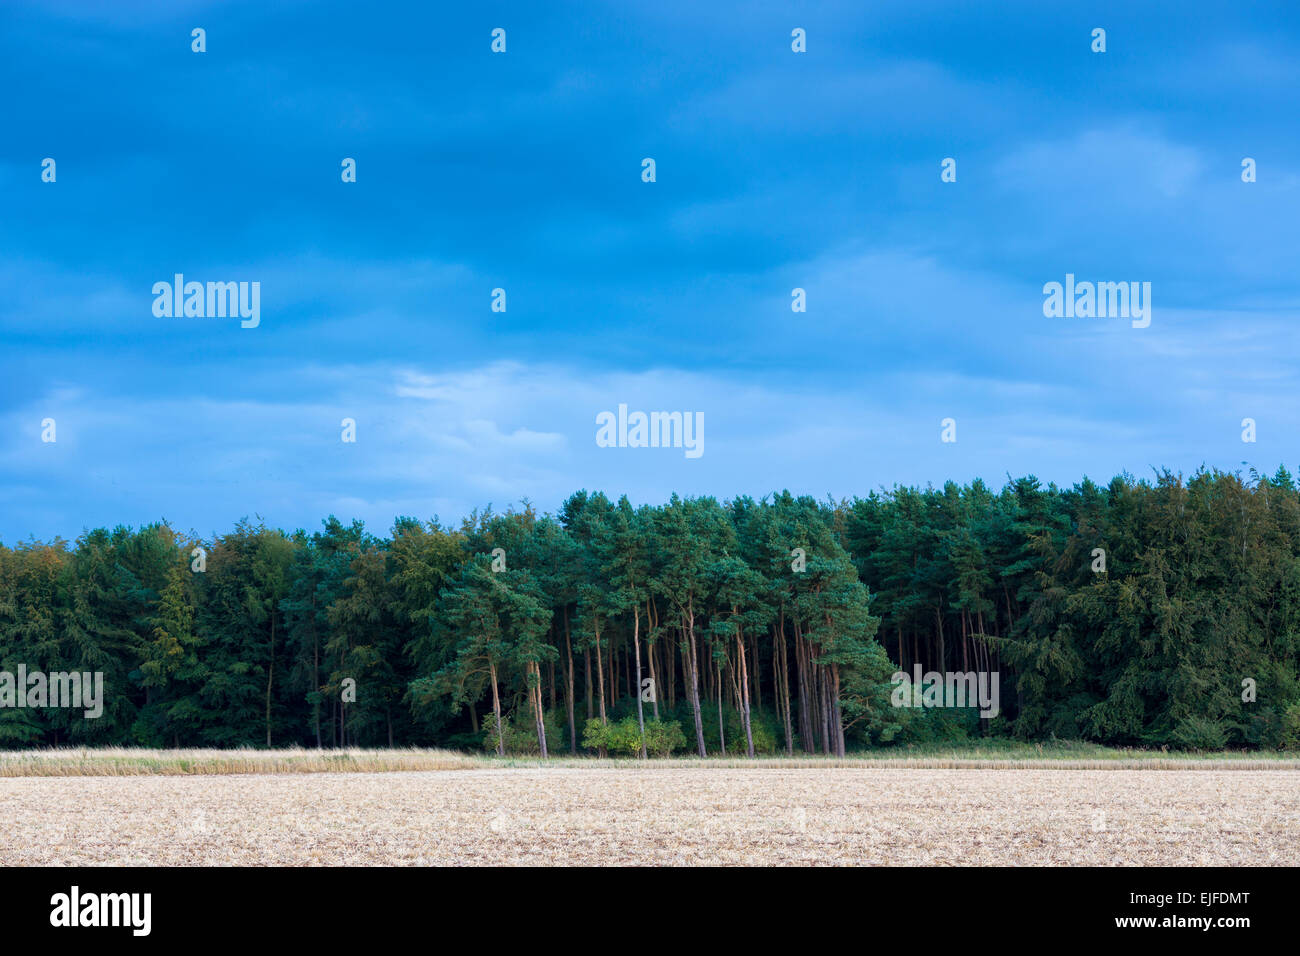 Evergreen coniferous forest of tall larch trees and conifers in the Cotswolds, UK - Stock Image